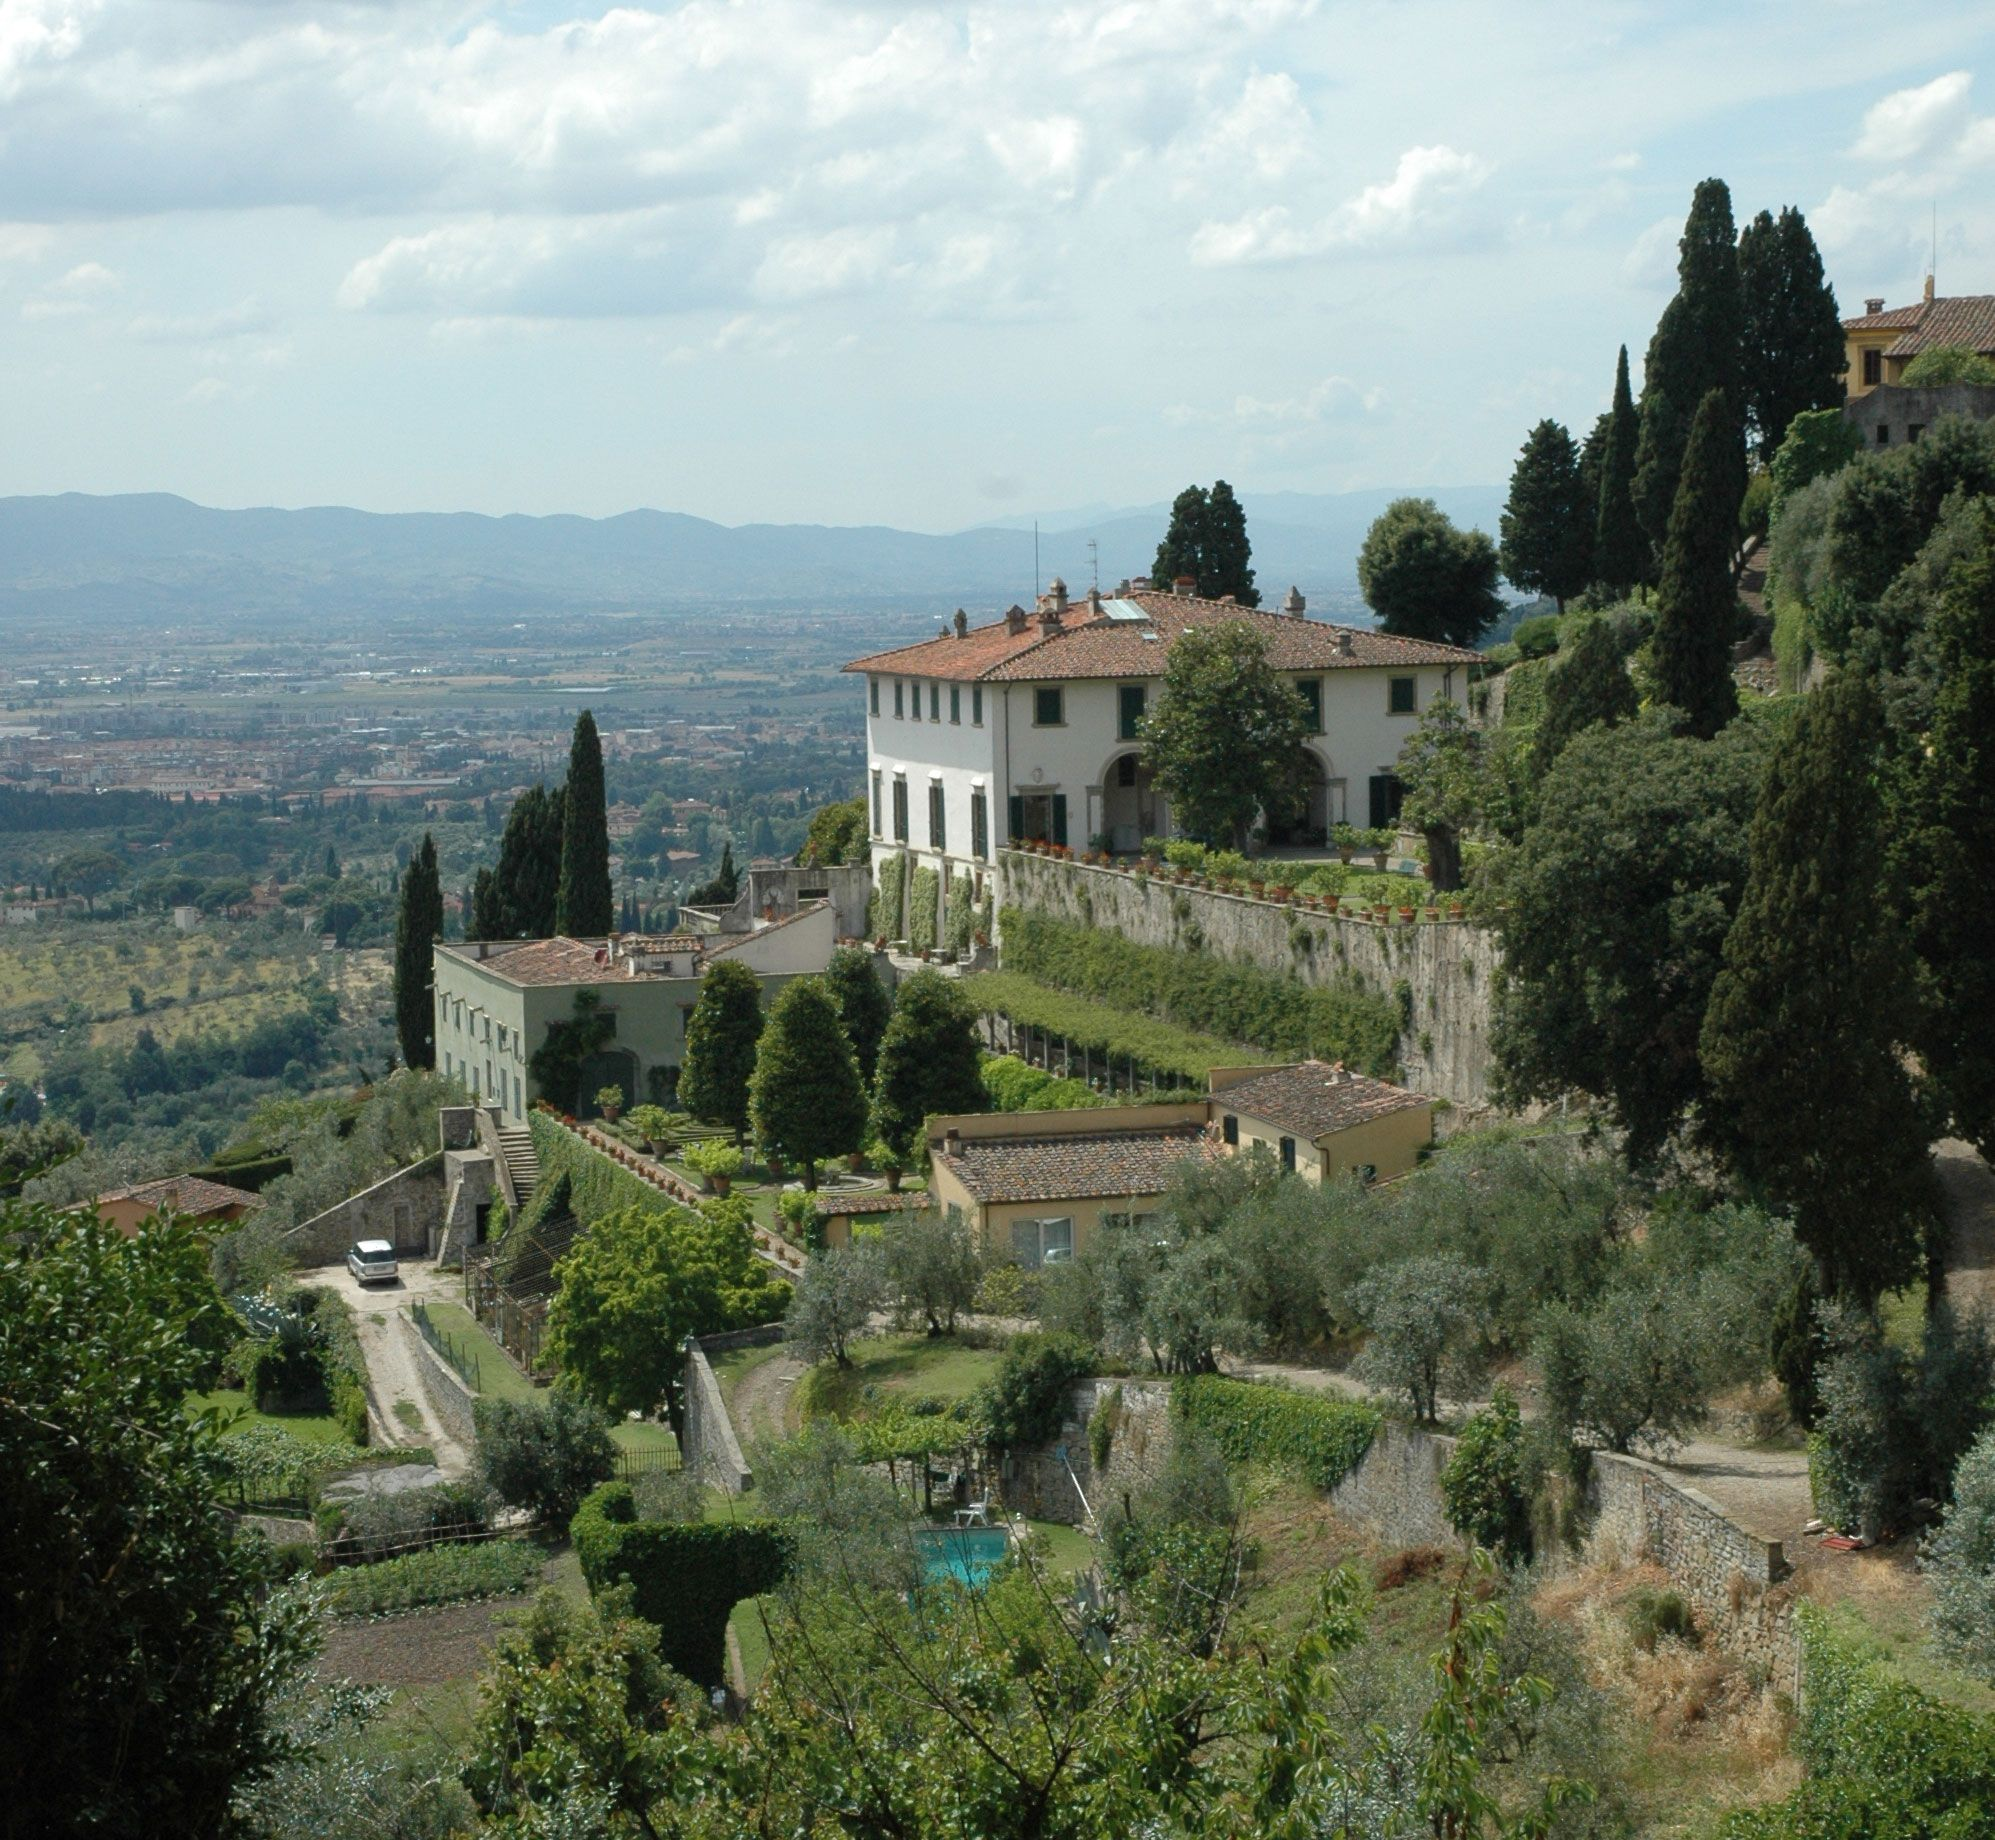 Villa Medici Fiesole Wonders of the world